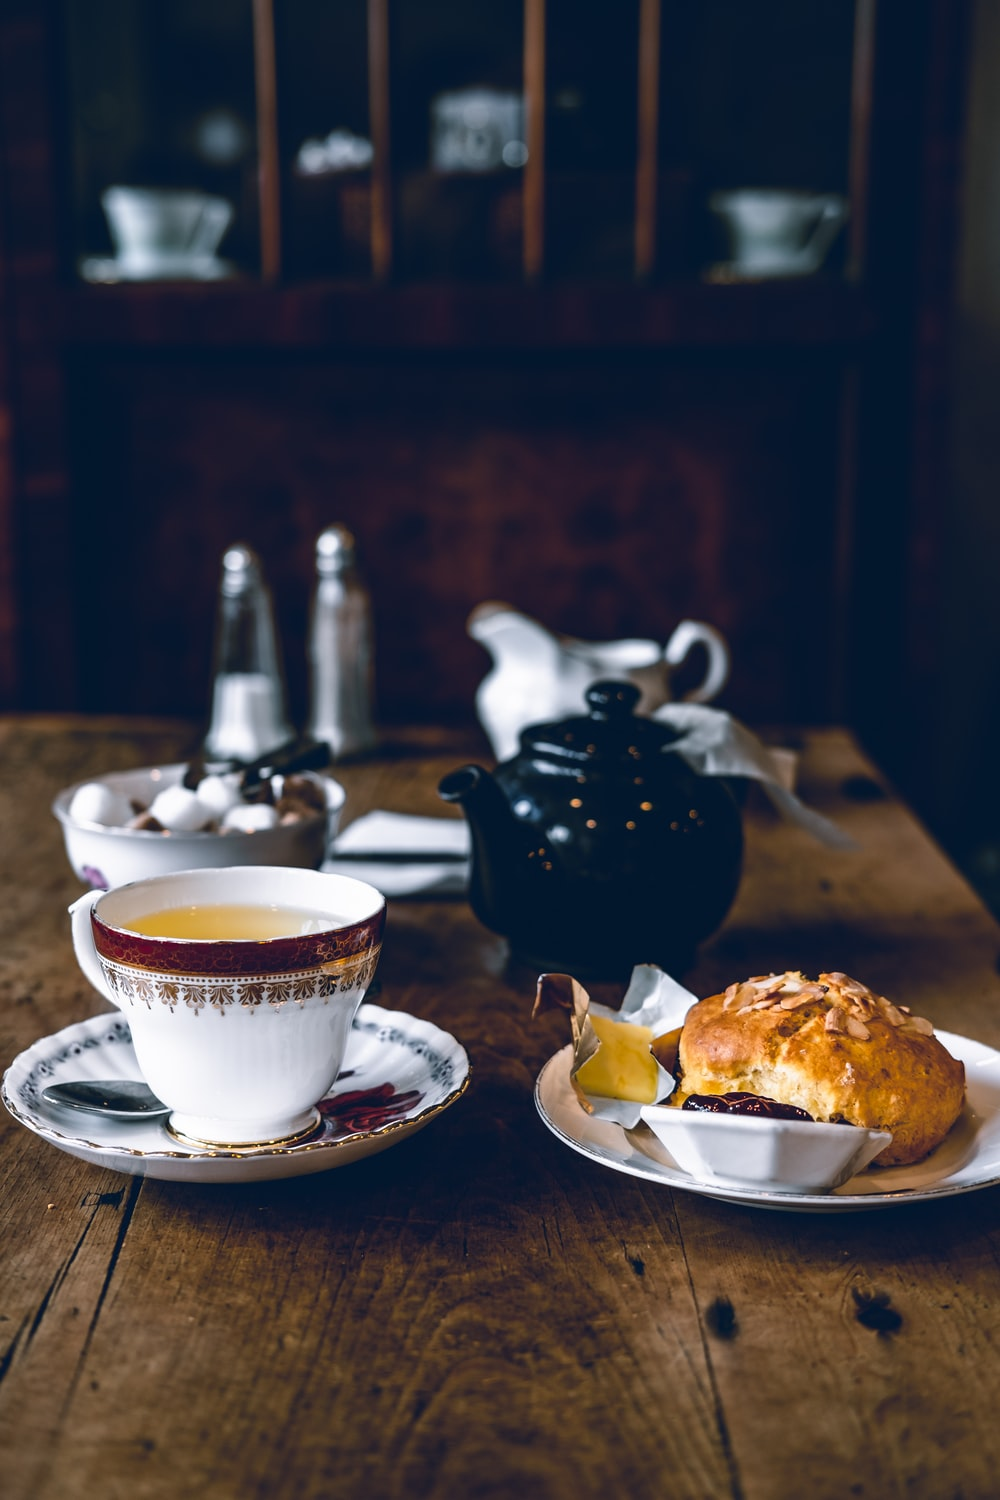 coffee pot beside bread on plate and teapot on table